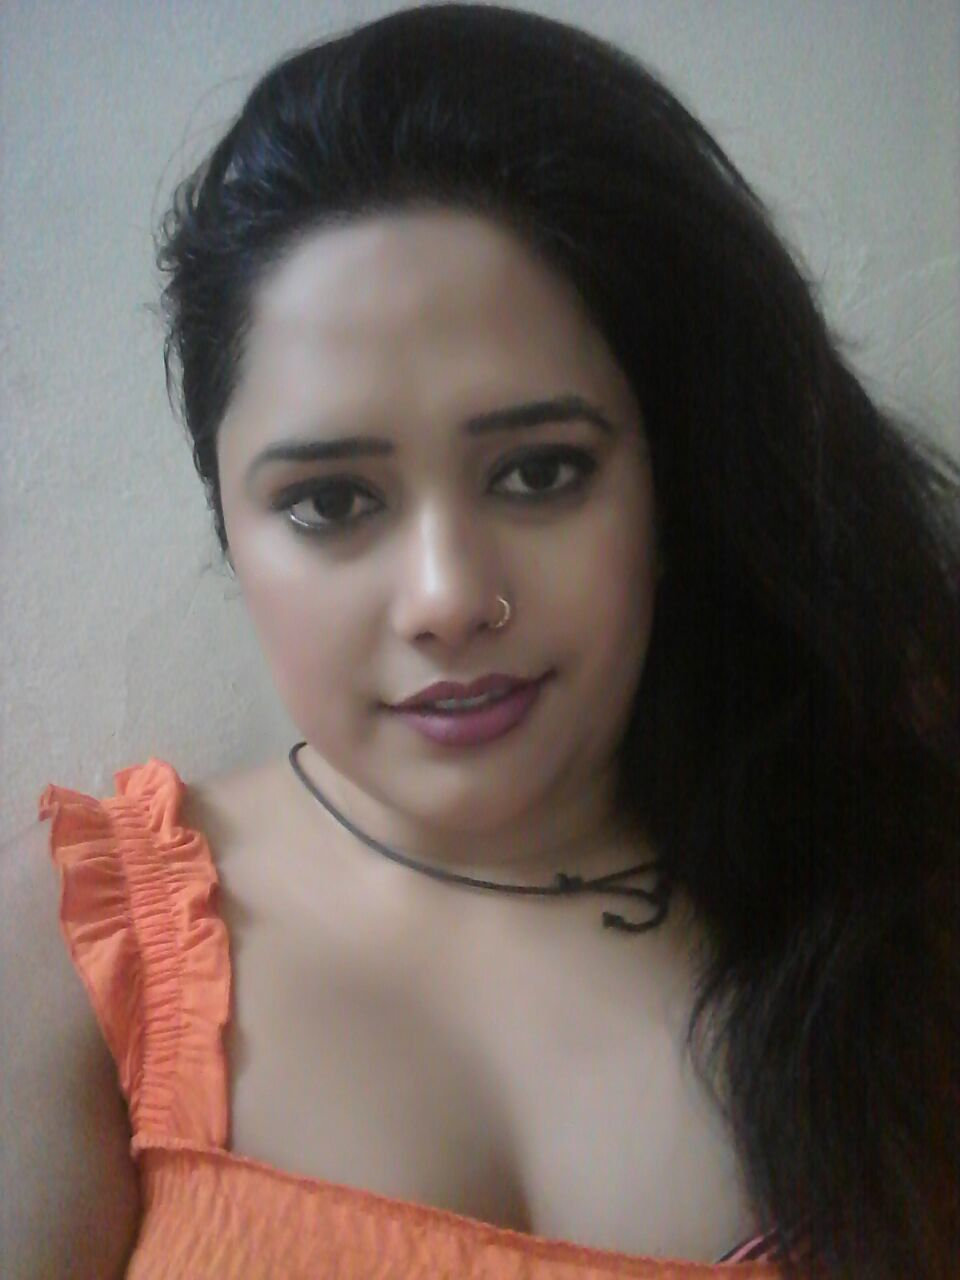 Sk indian escorts in jlt dubai 0556788010 indian escorts girls in jlt dubai - 4 1